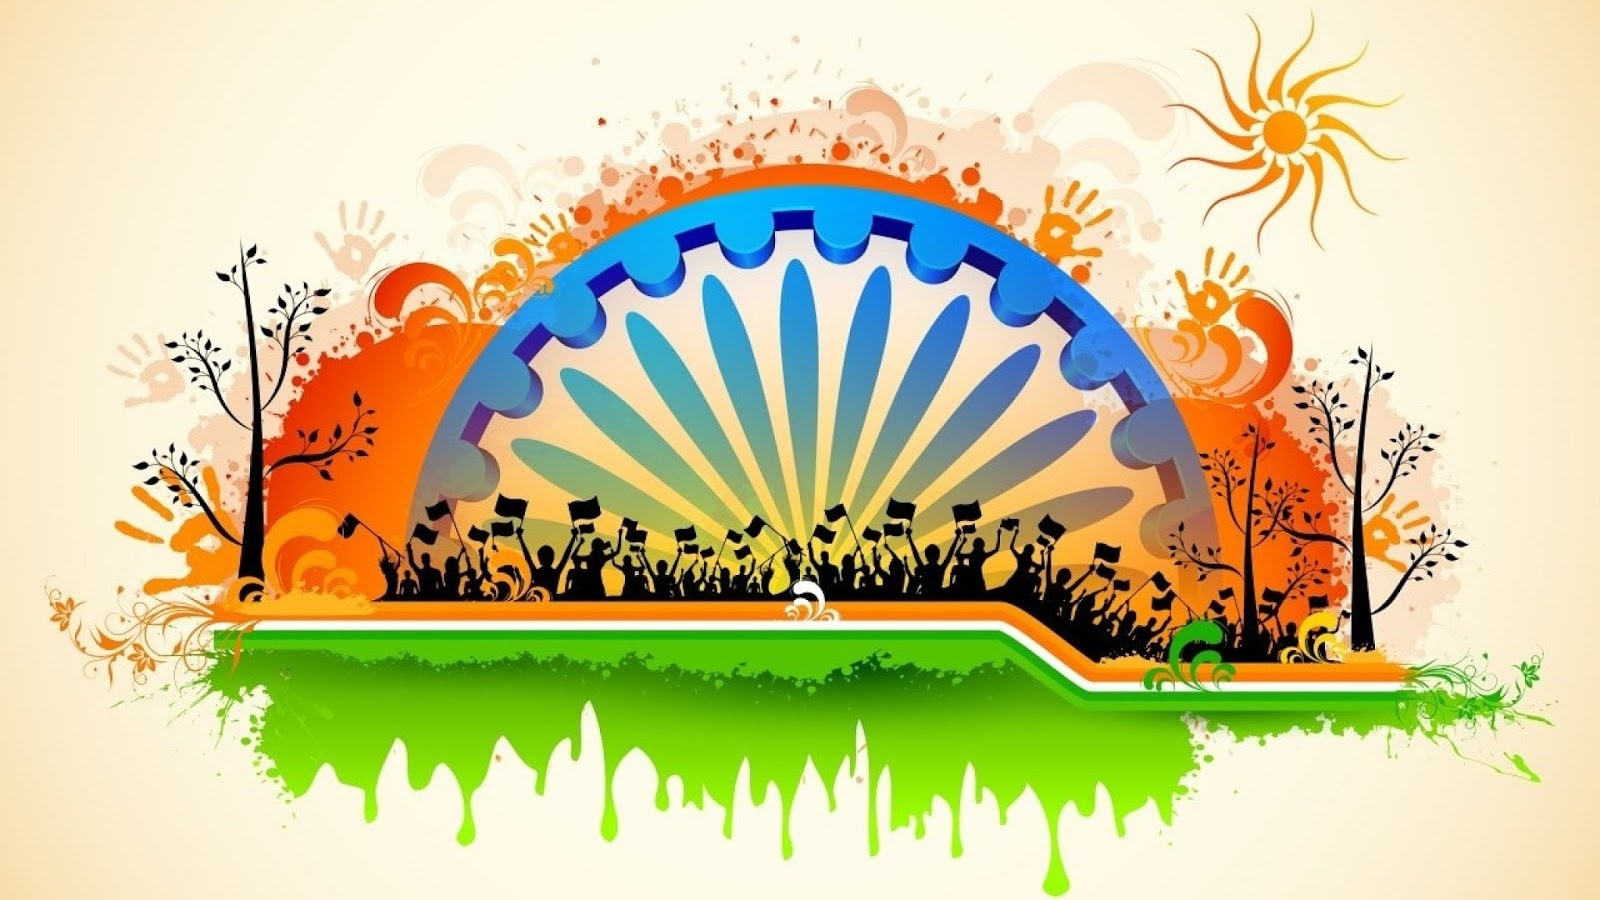 Patriotic Slogans for Republic Day in Hindi